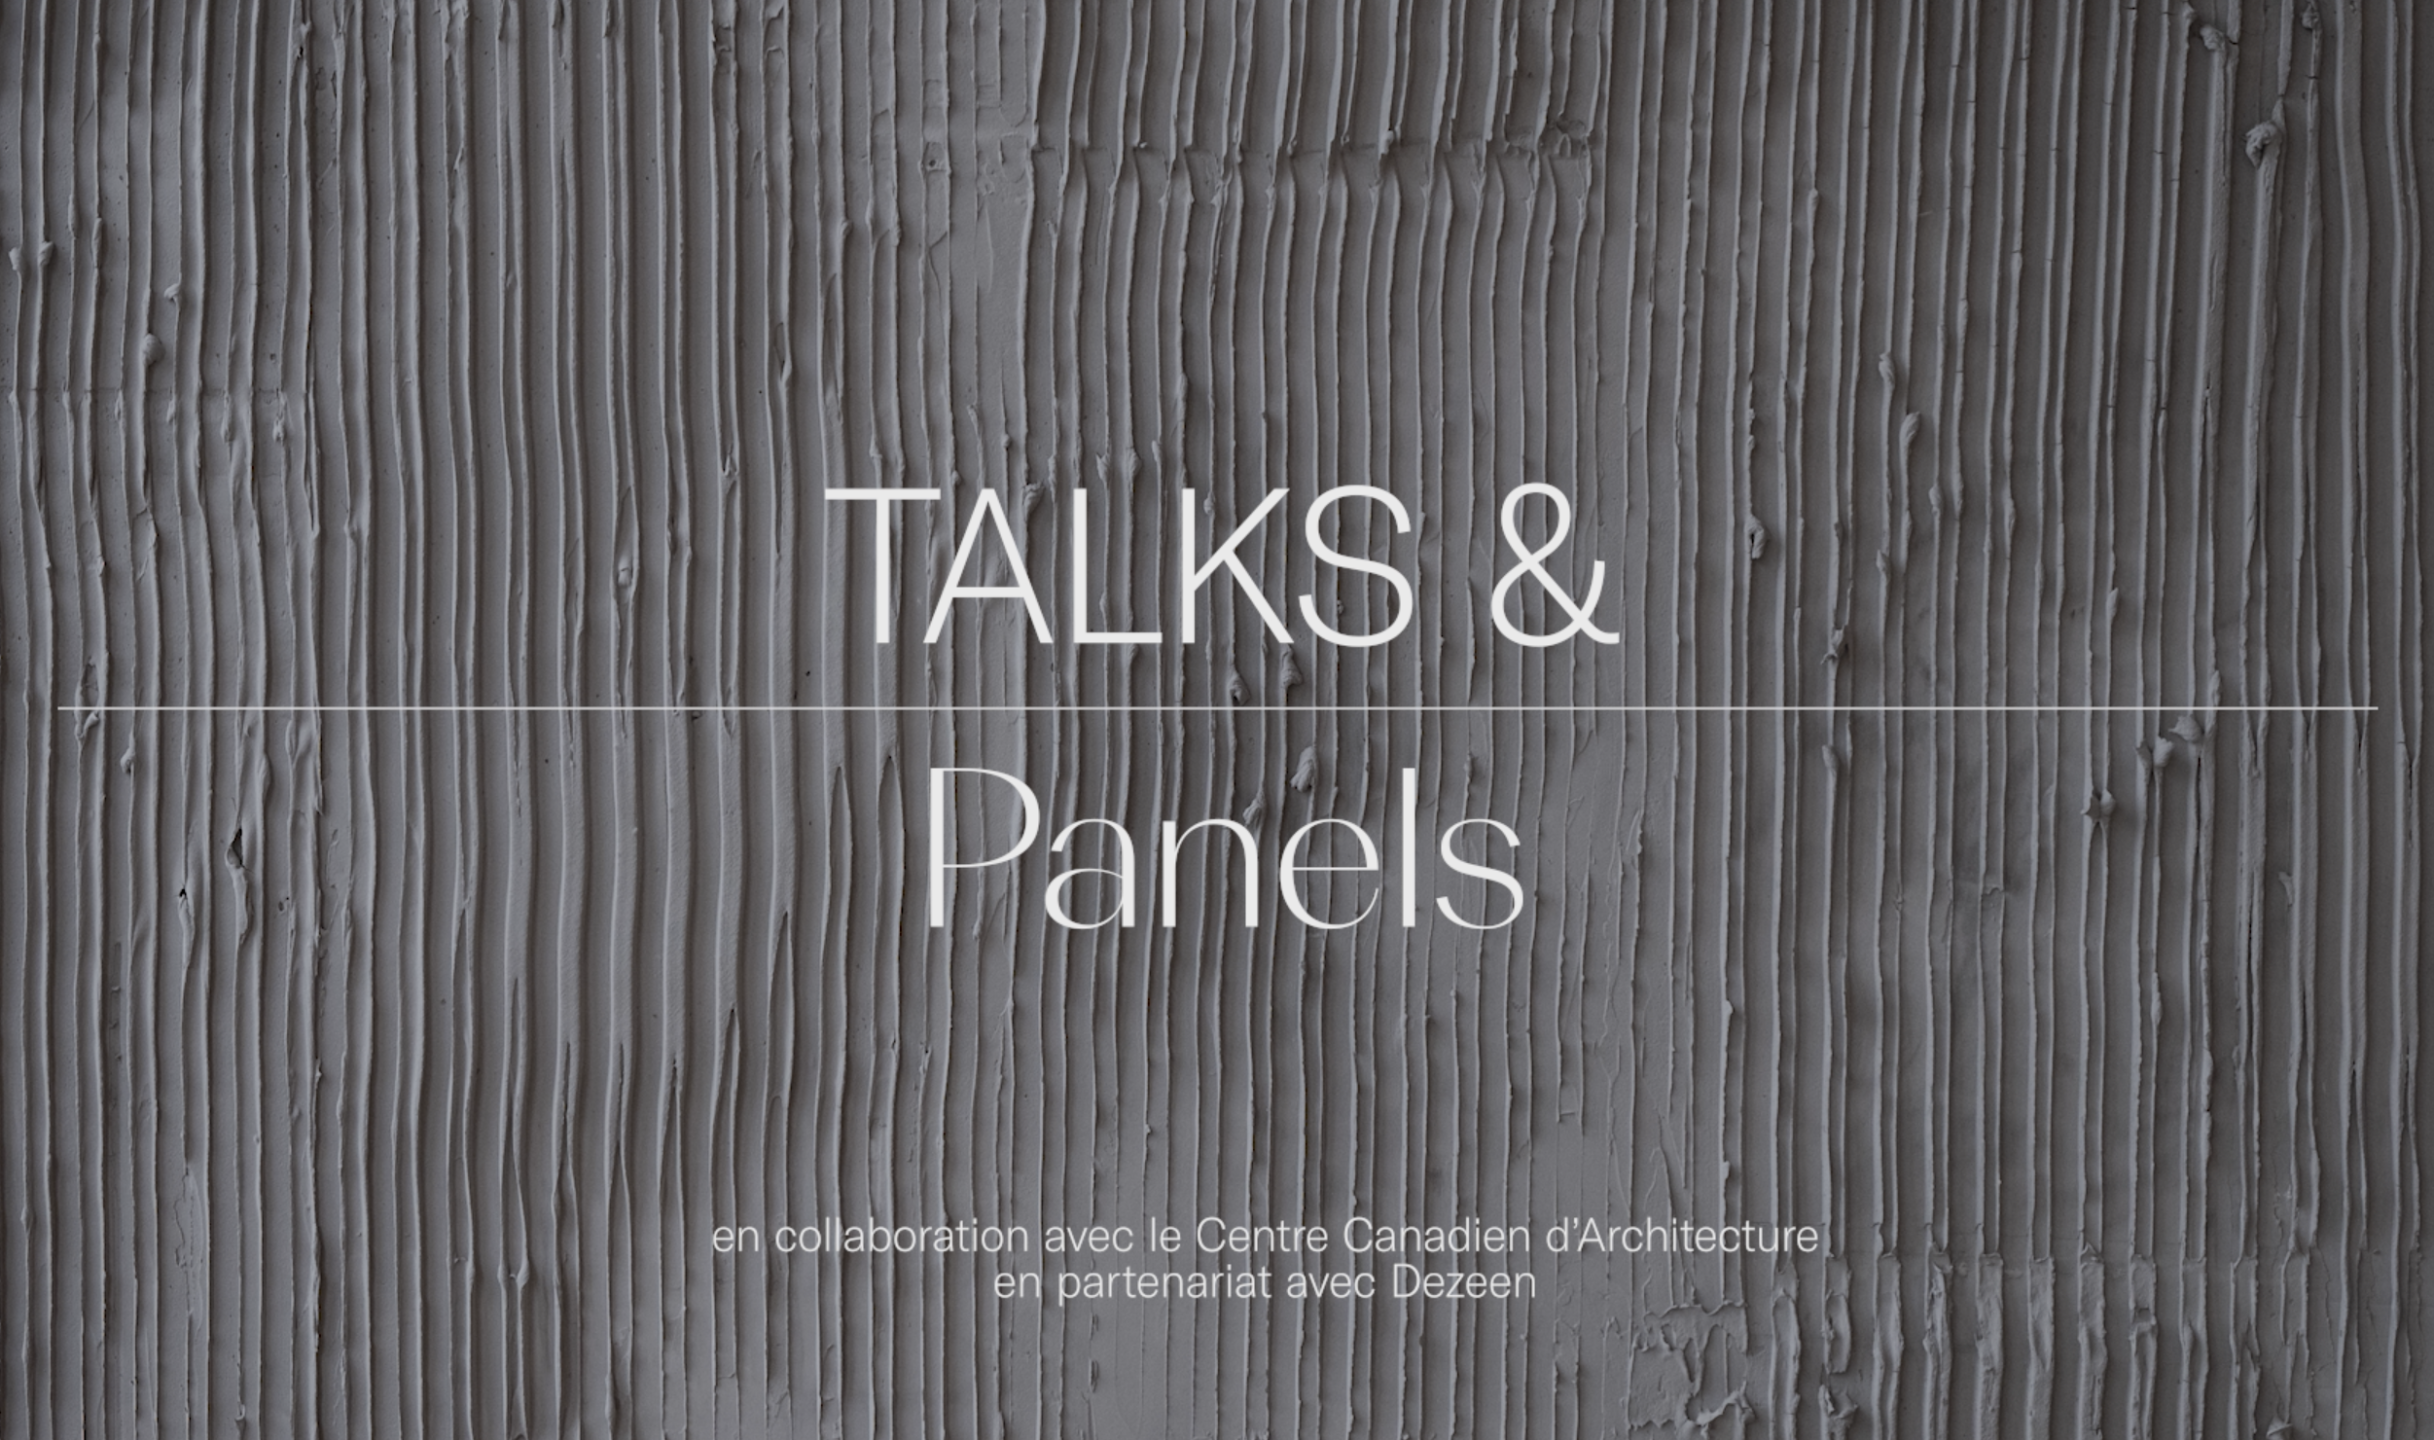 TALKS & PANELS - fr